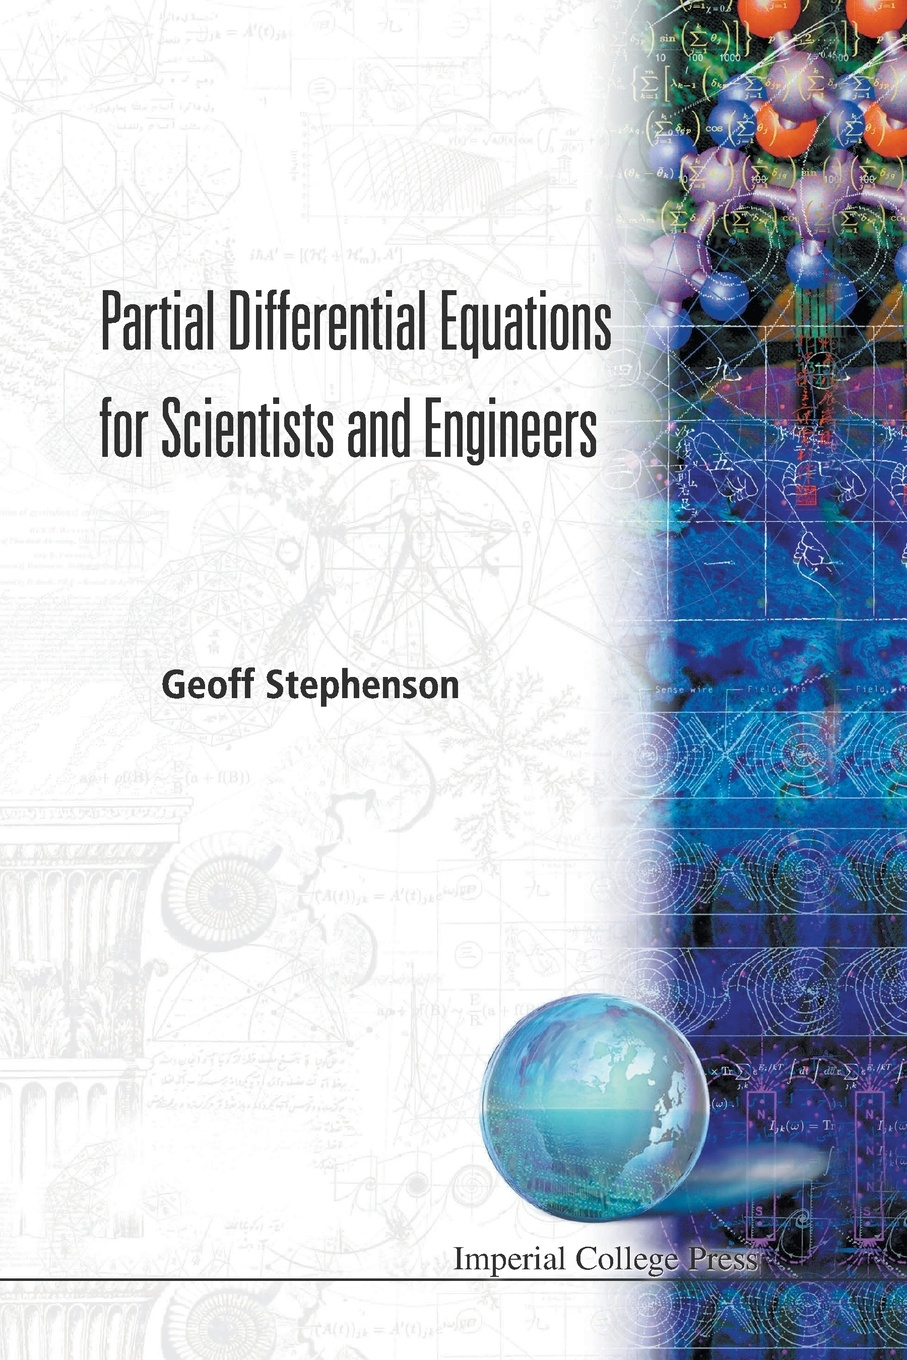 Geoff Stephenson PARTIAL DIFFERENTIAL EQUATIONS FOR SCIENTISTS AND ENGINEERS